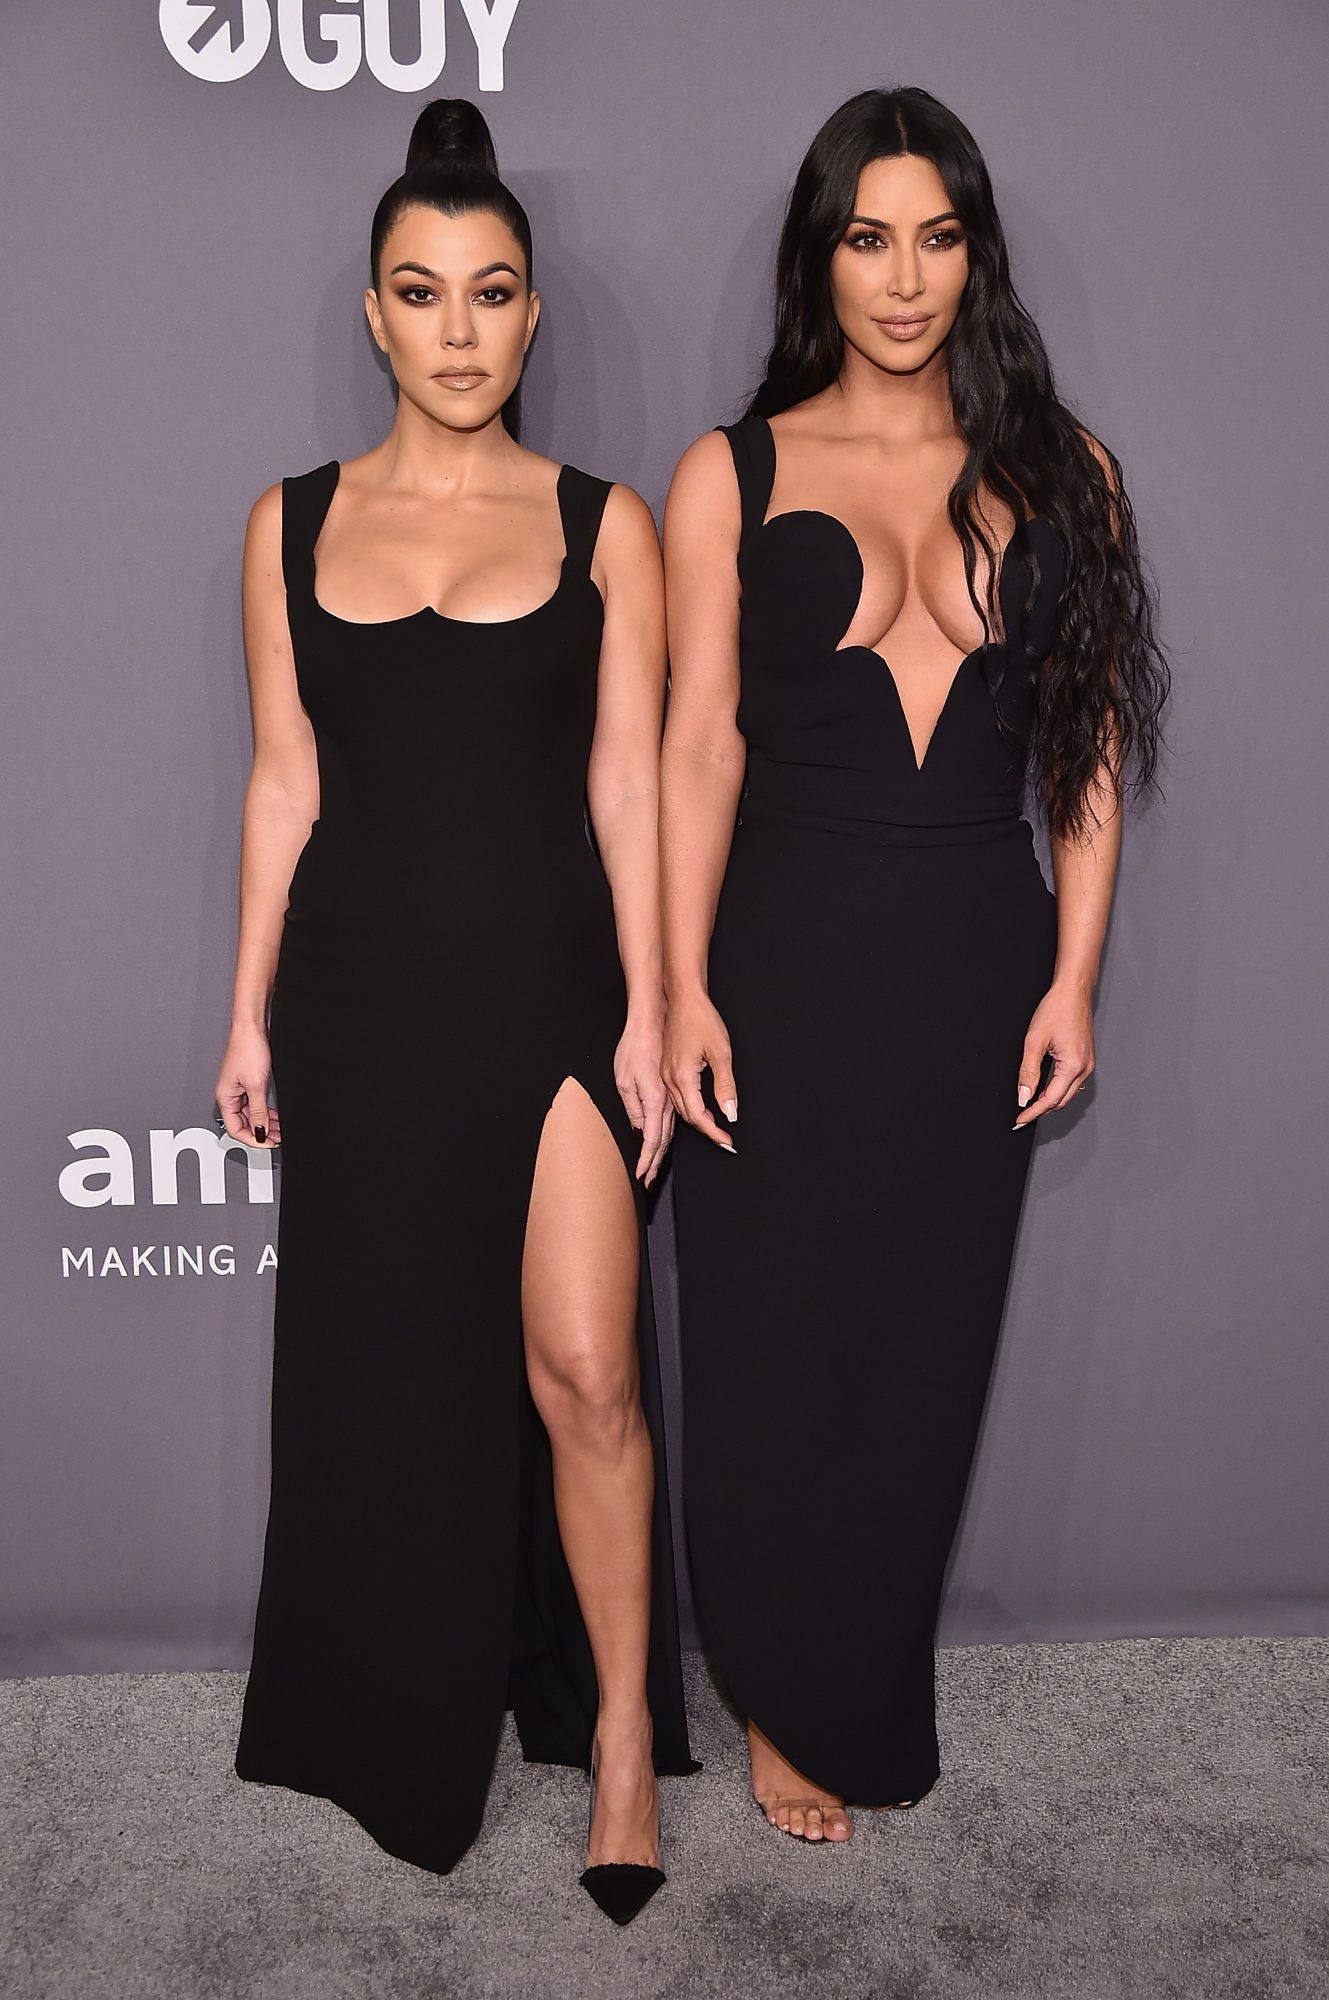 Kim and Kourtney Kardashian Look Unrecognizable as They Try Trendy but Bizarre New Face Masks